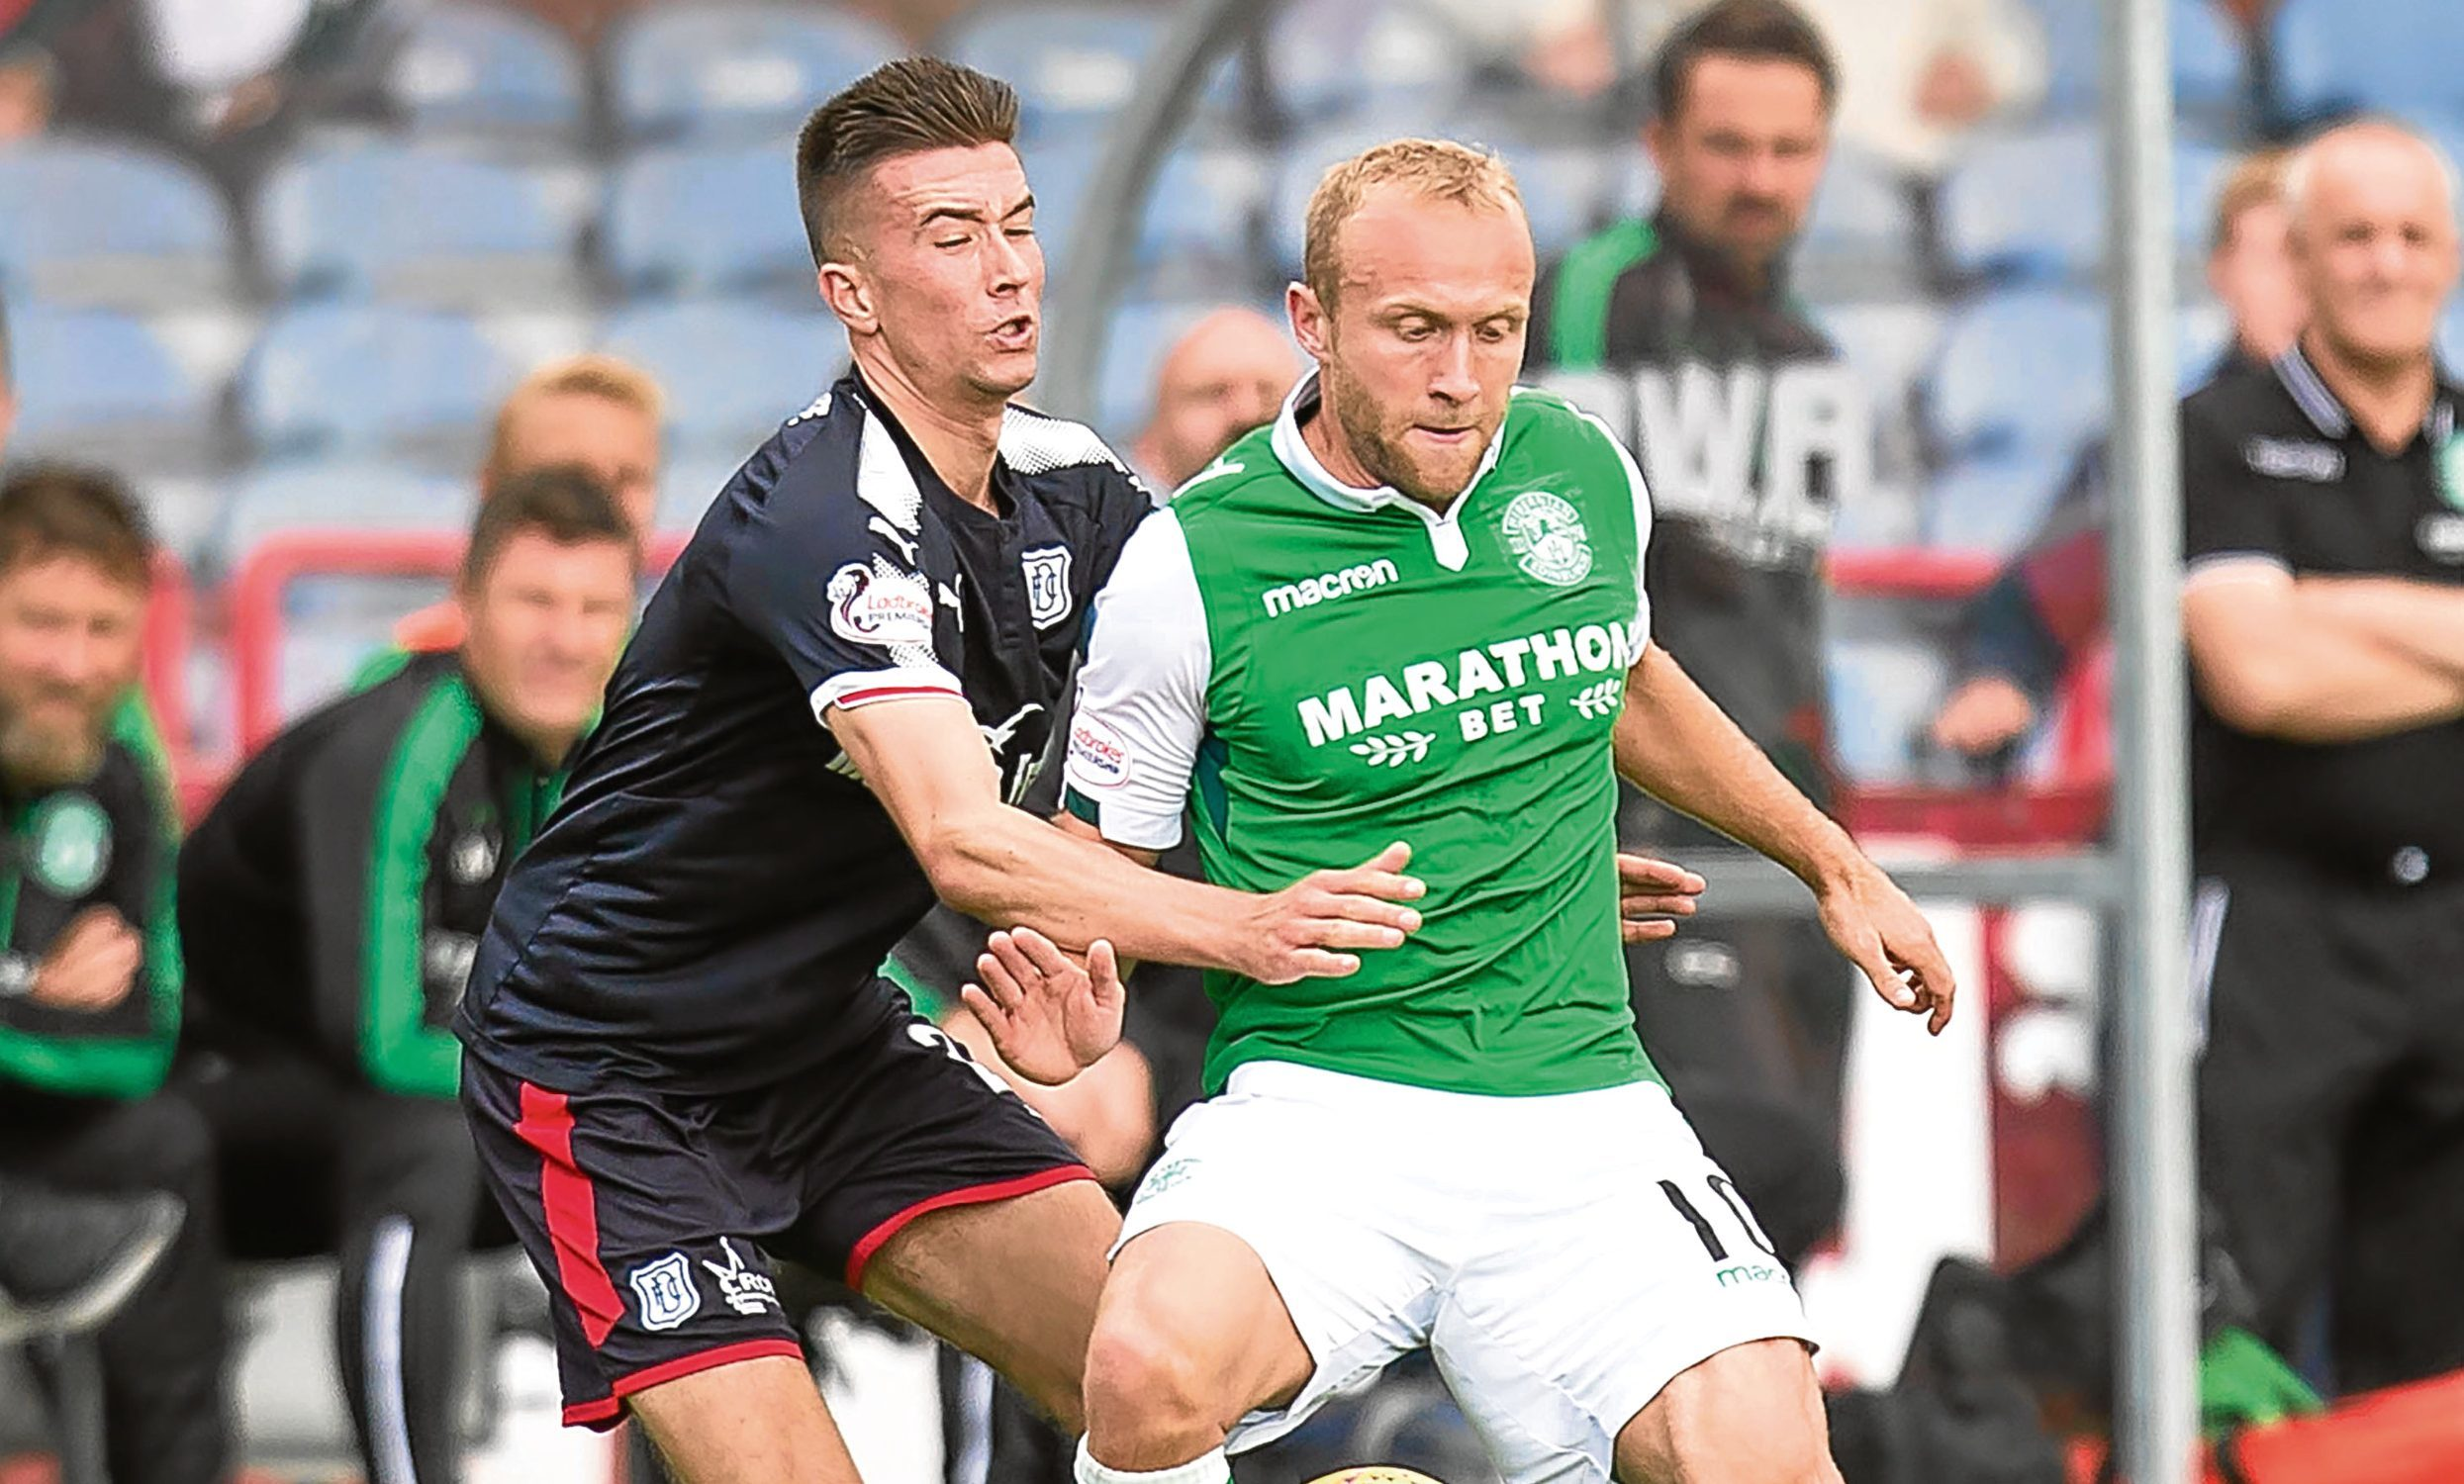 Dundee's Cammy Kerr and Hibernian's Dylan McGeouch battle for the ball